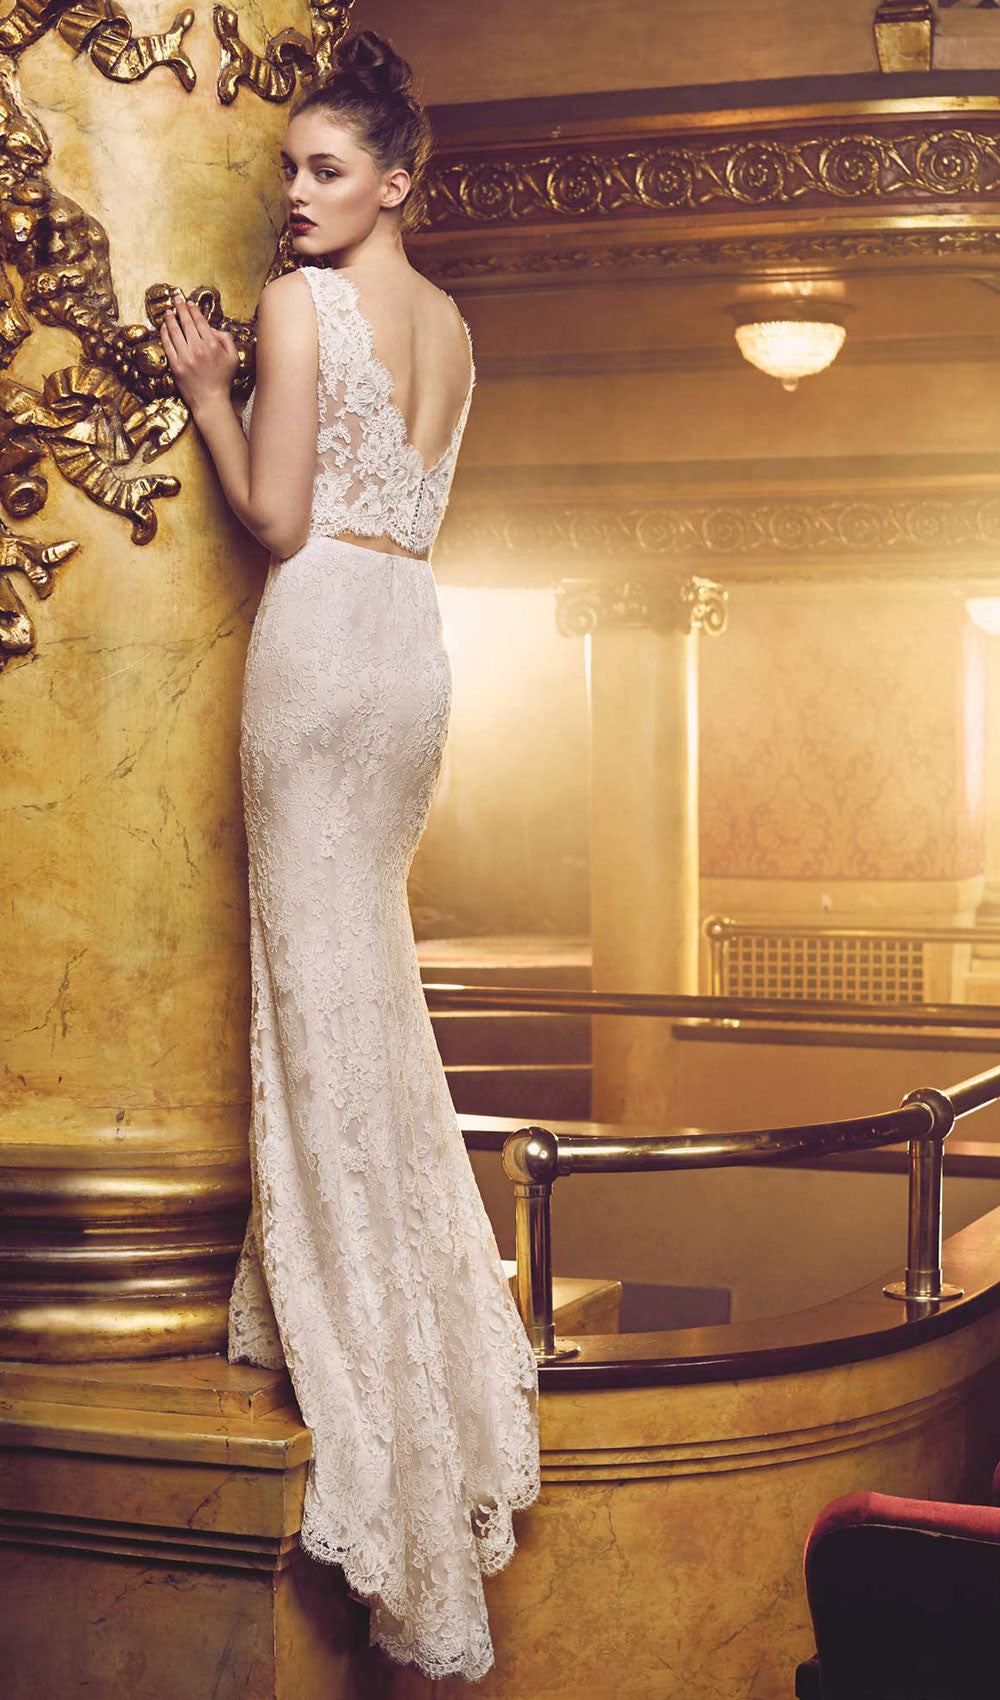 Paloma Blanca - STYLE 4705 |Schaffer's Bridal in Des Moines, Iowa